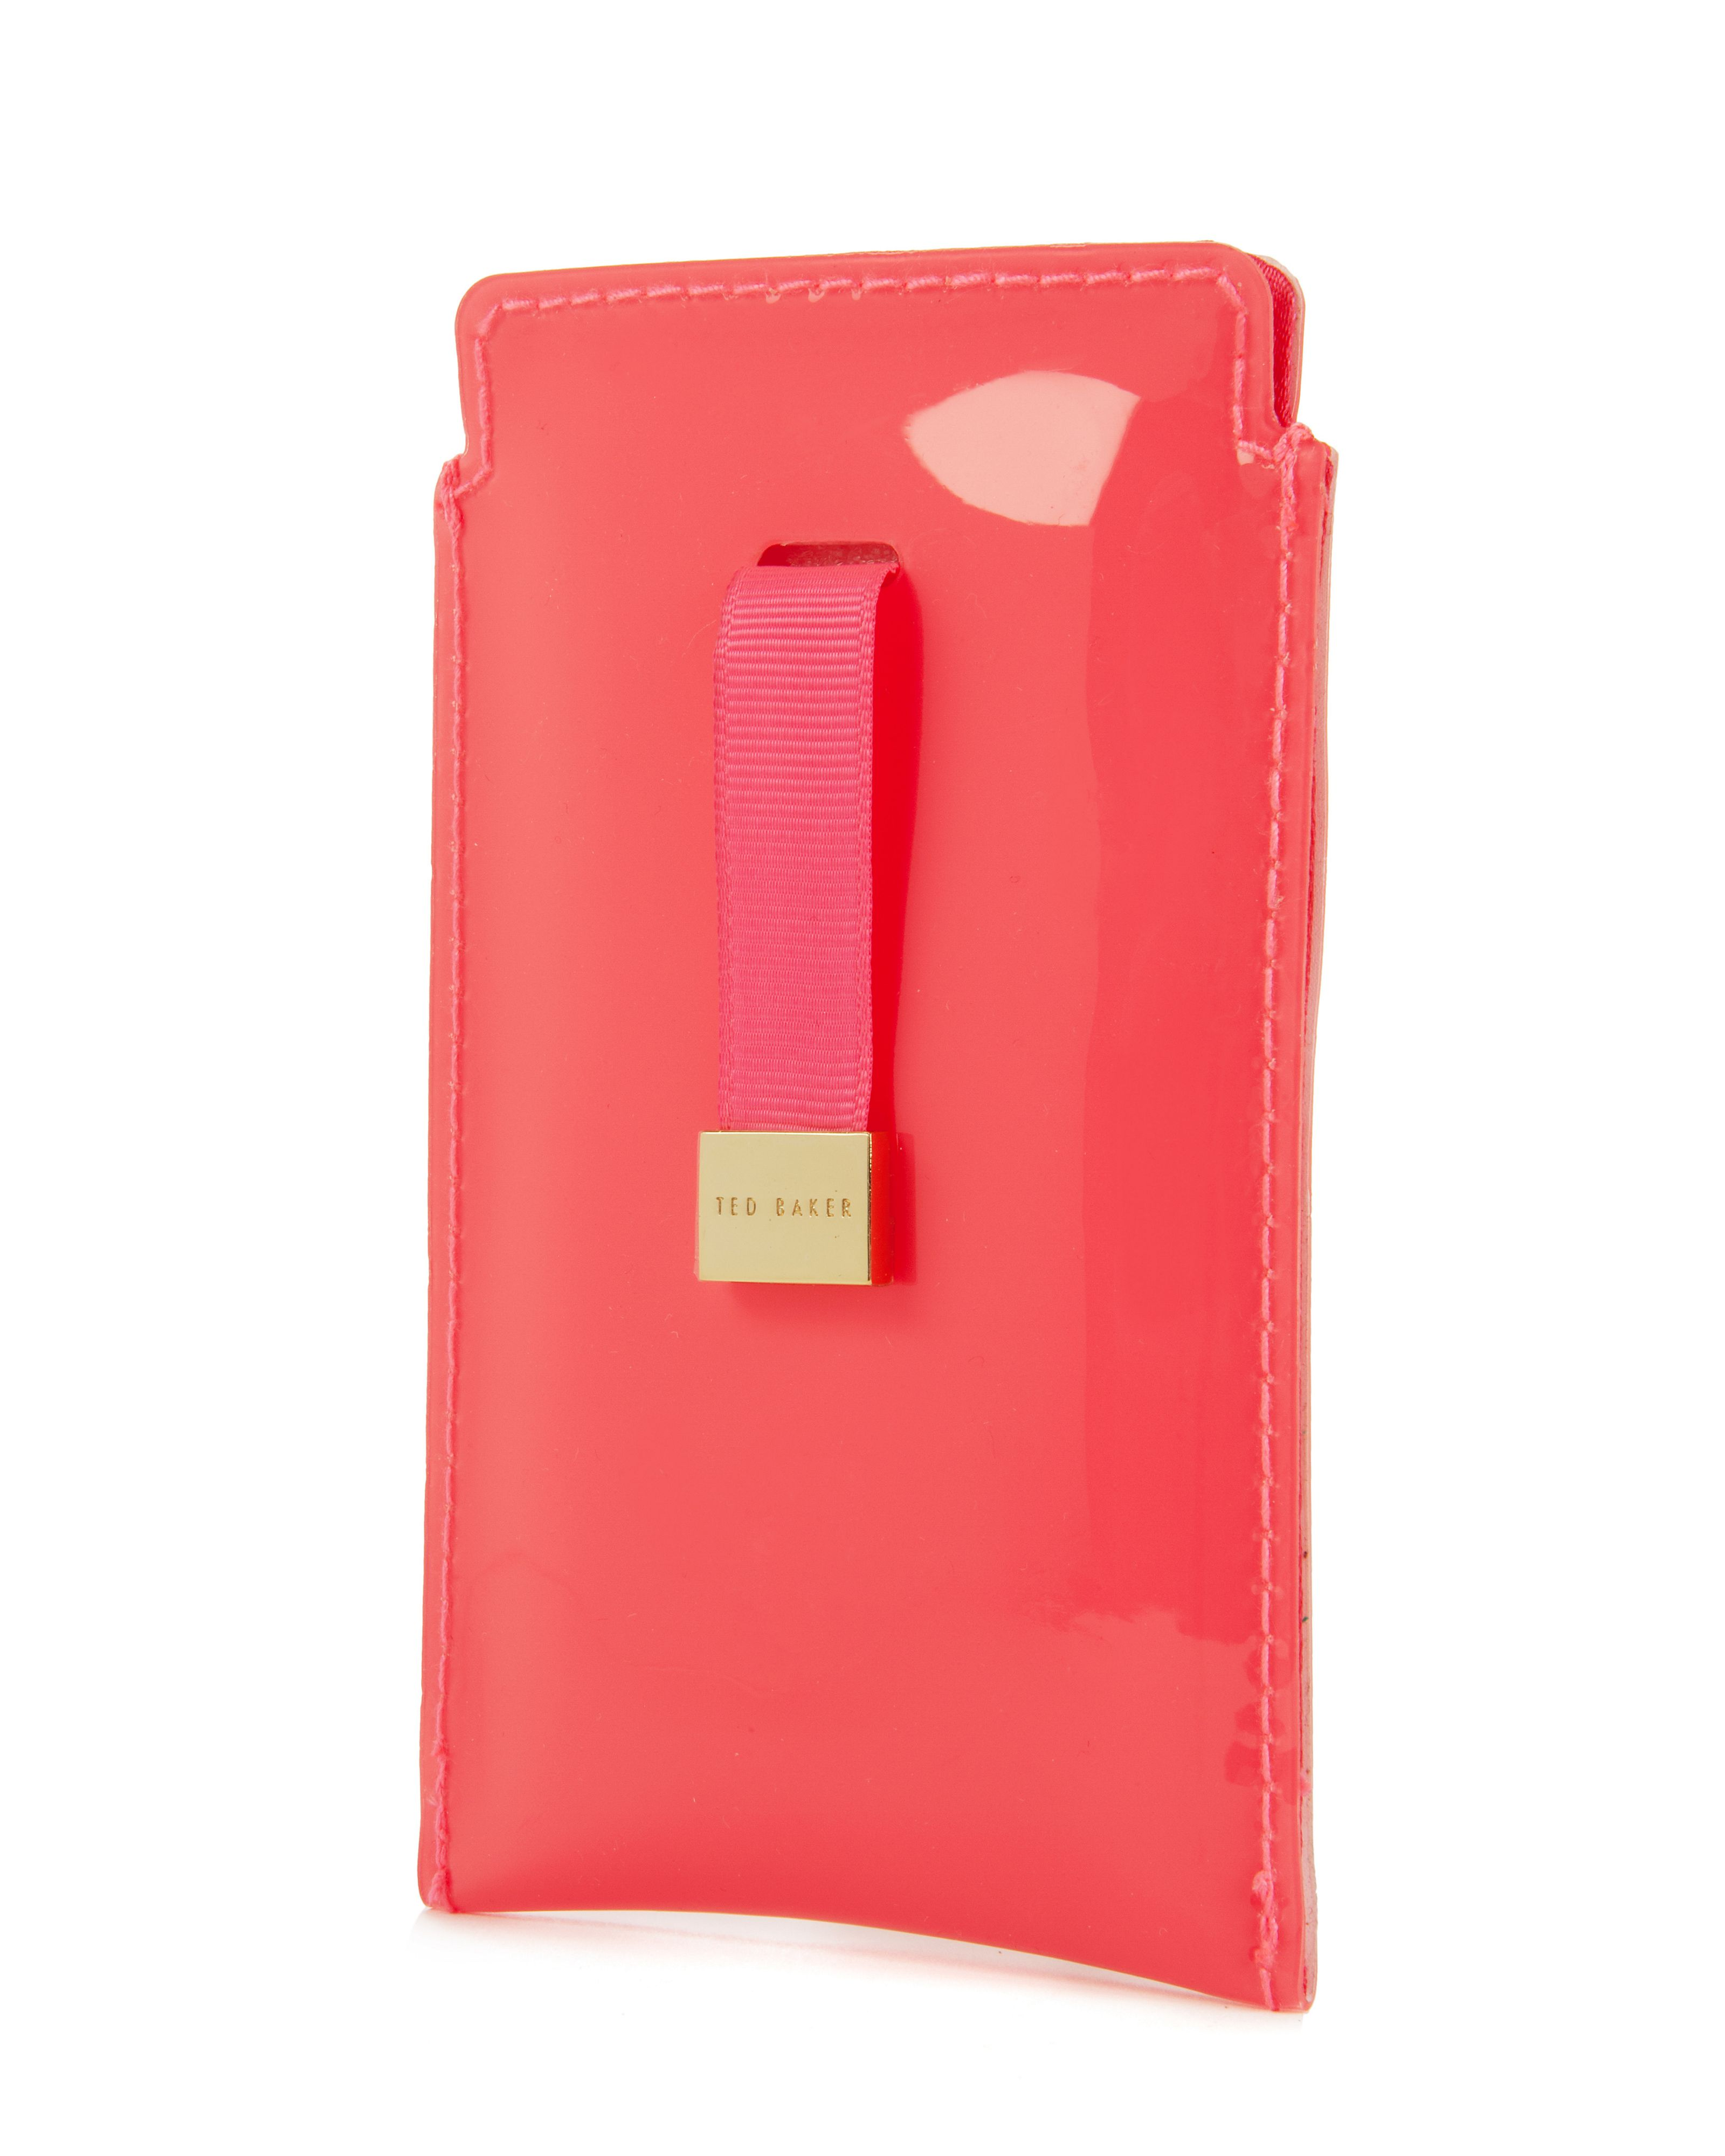 Petri bow phone sleeve